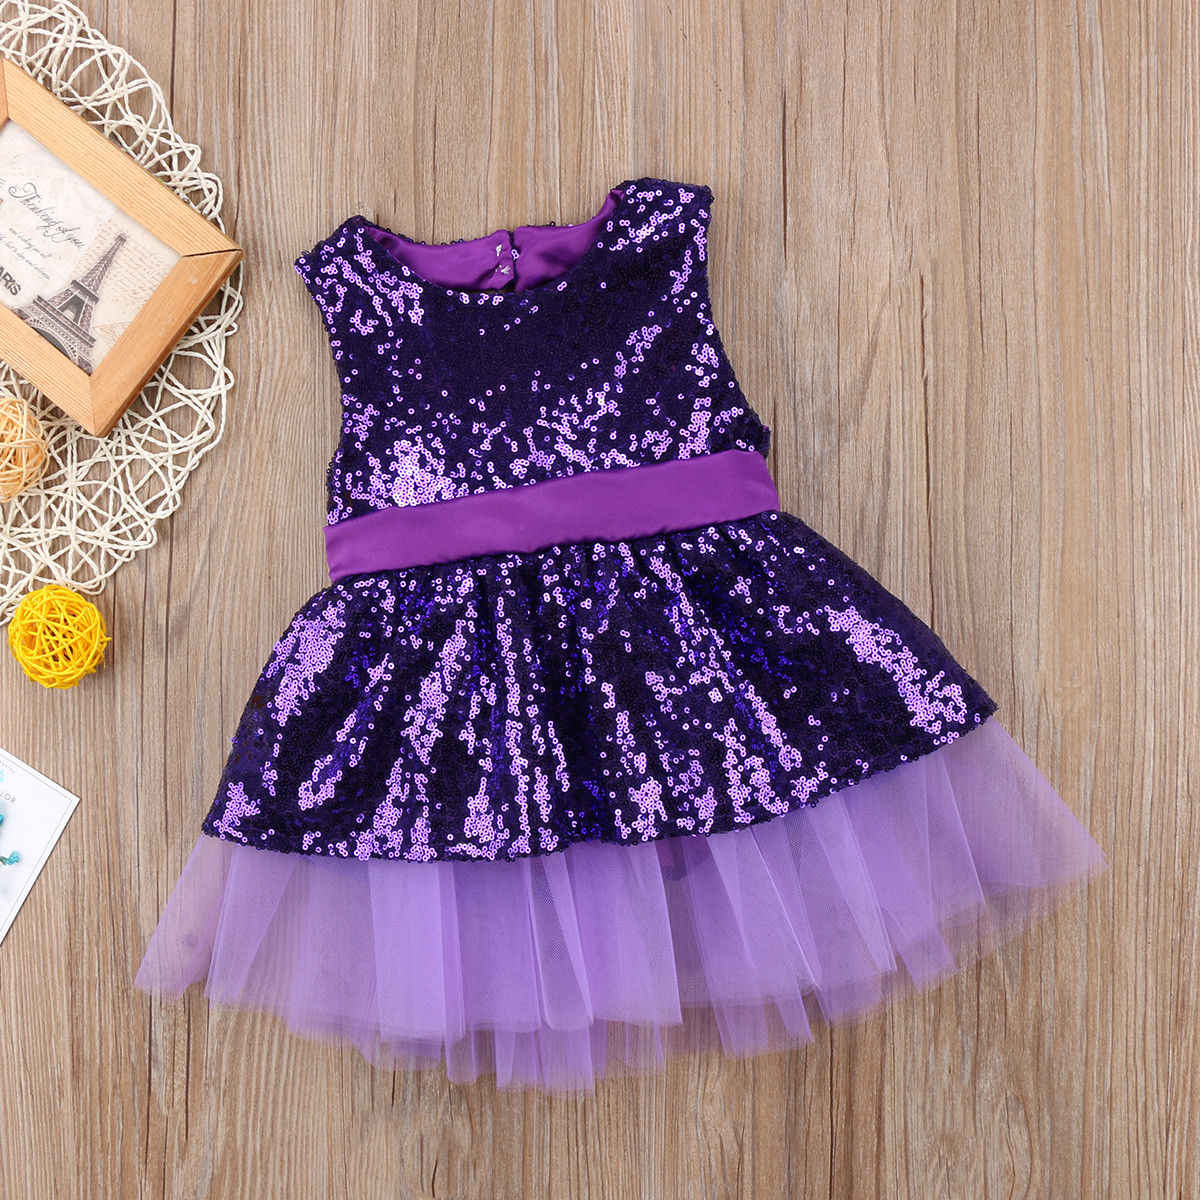 Baby Girls Formal Dresses Hot Sale Sequins Dress For Girls Kids Baby Girl Tutu Bowknot Pageant Party Dress Girl Gown Bridesmaid